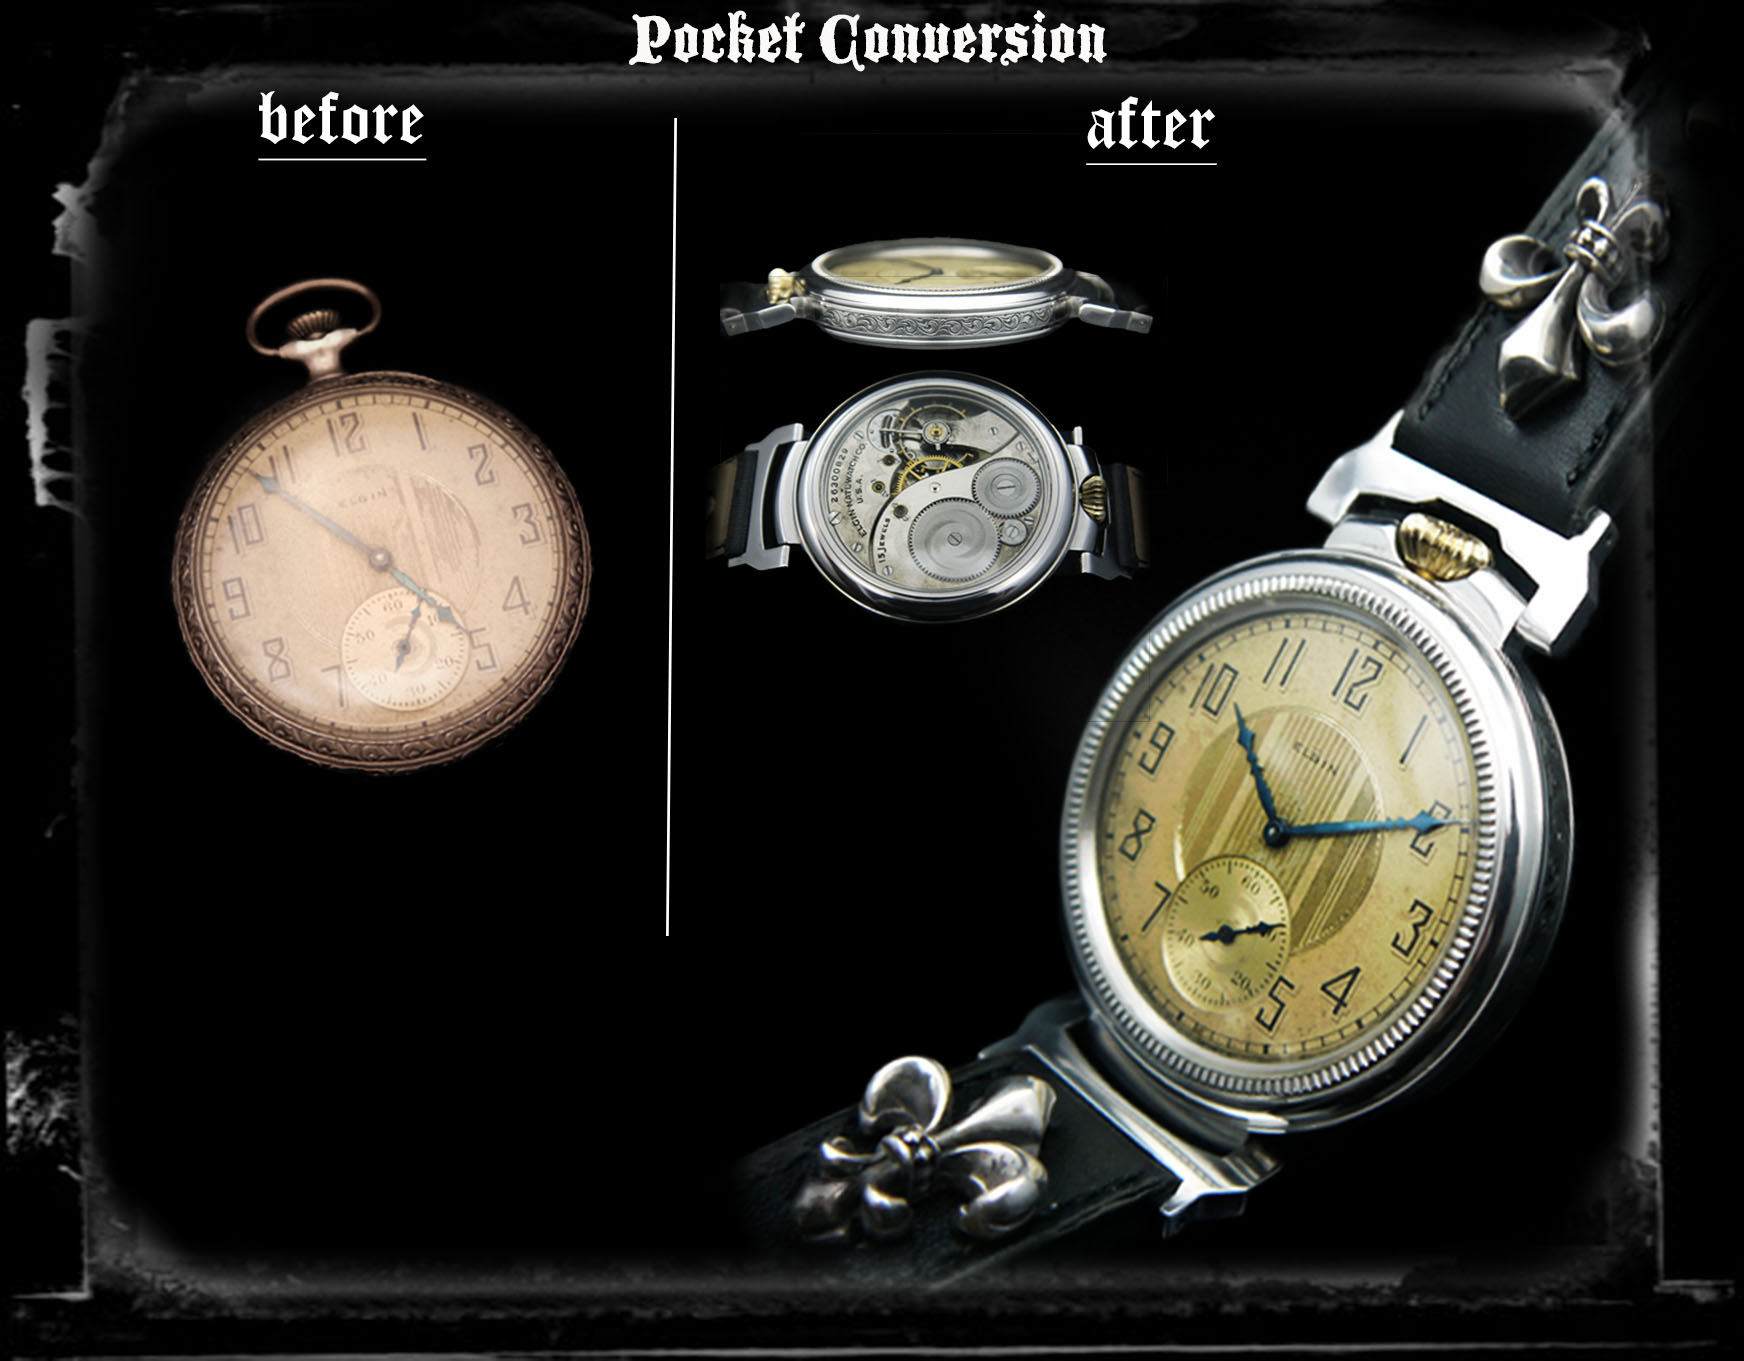 pocket-to-wrist-customize-watch-before-after-set.jpg